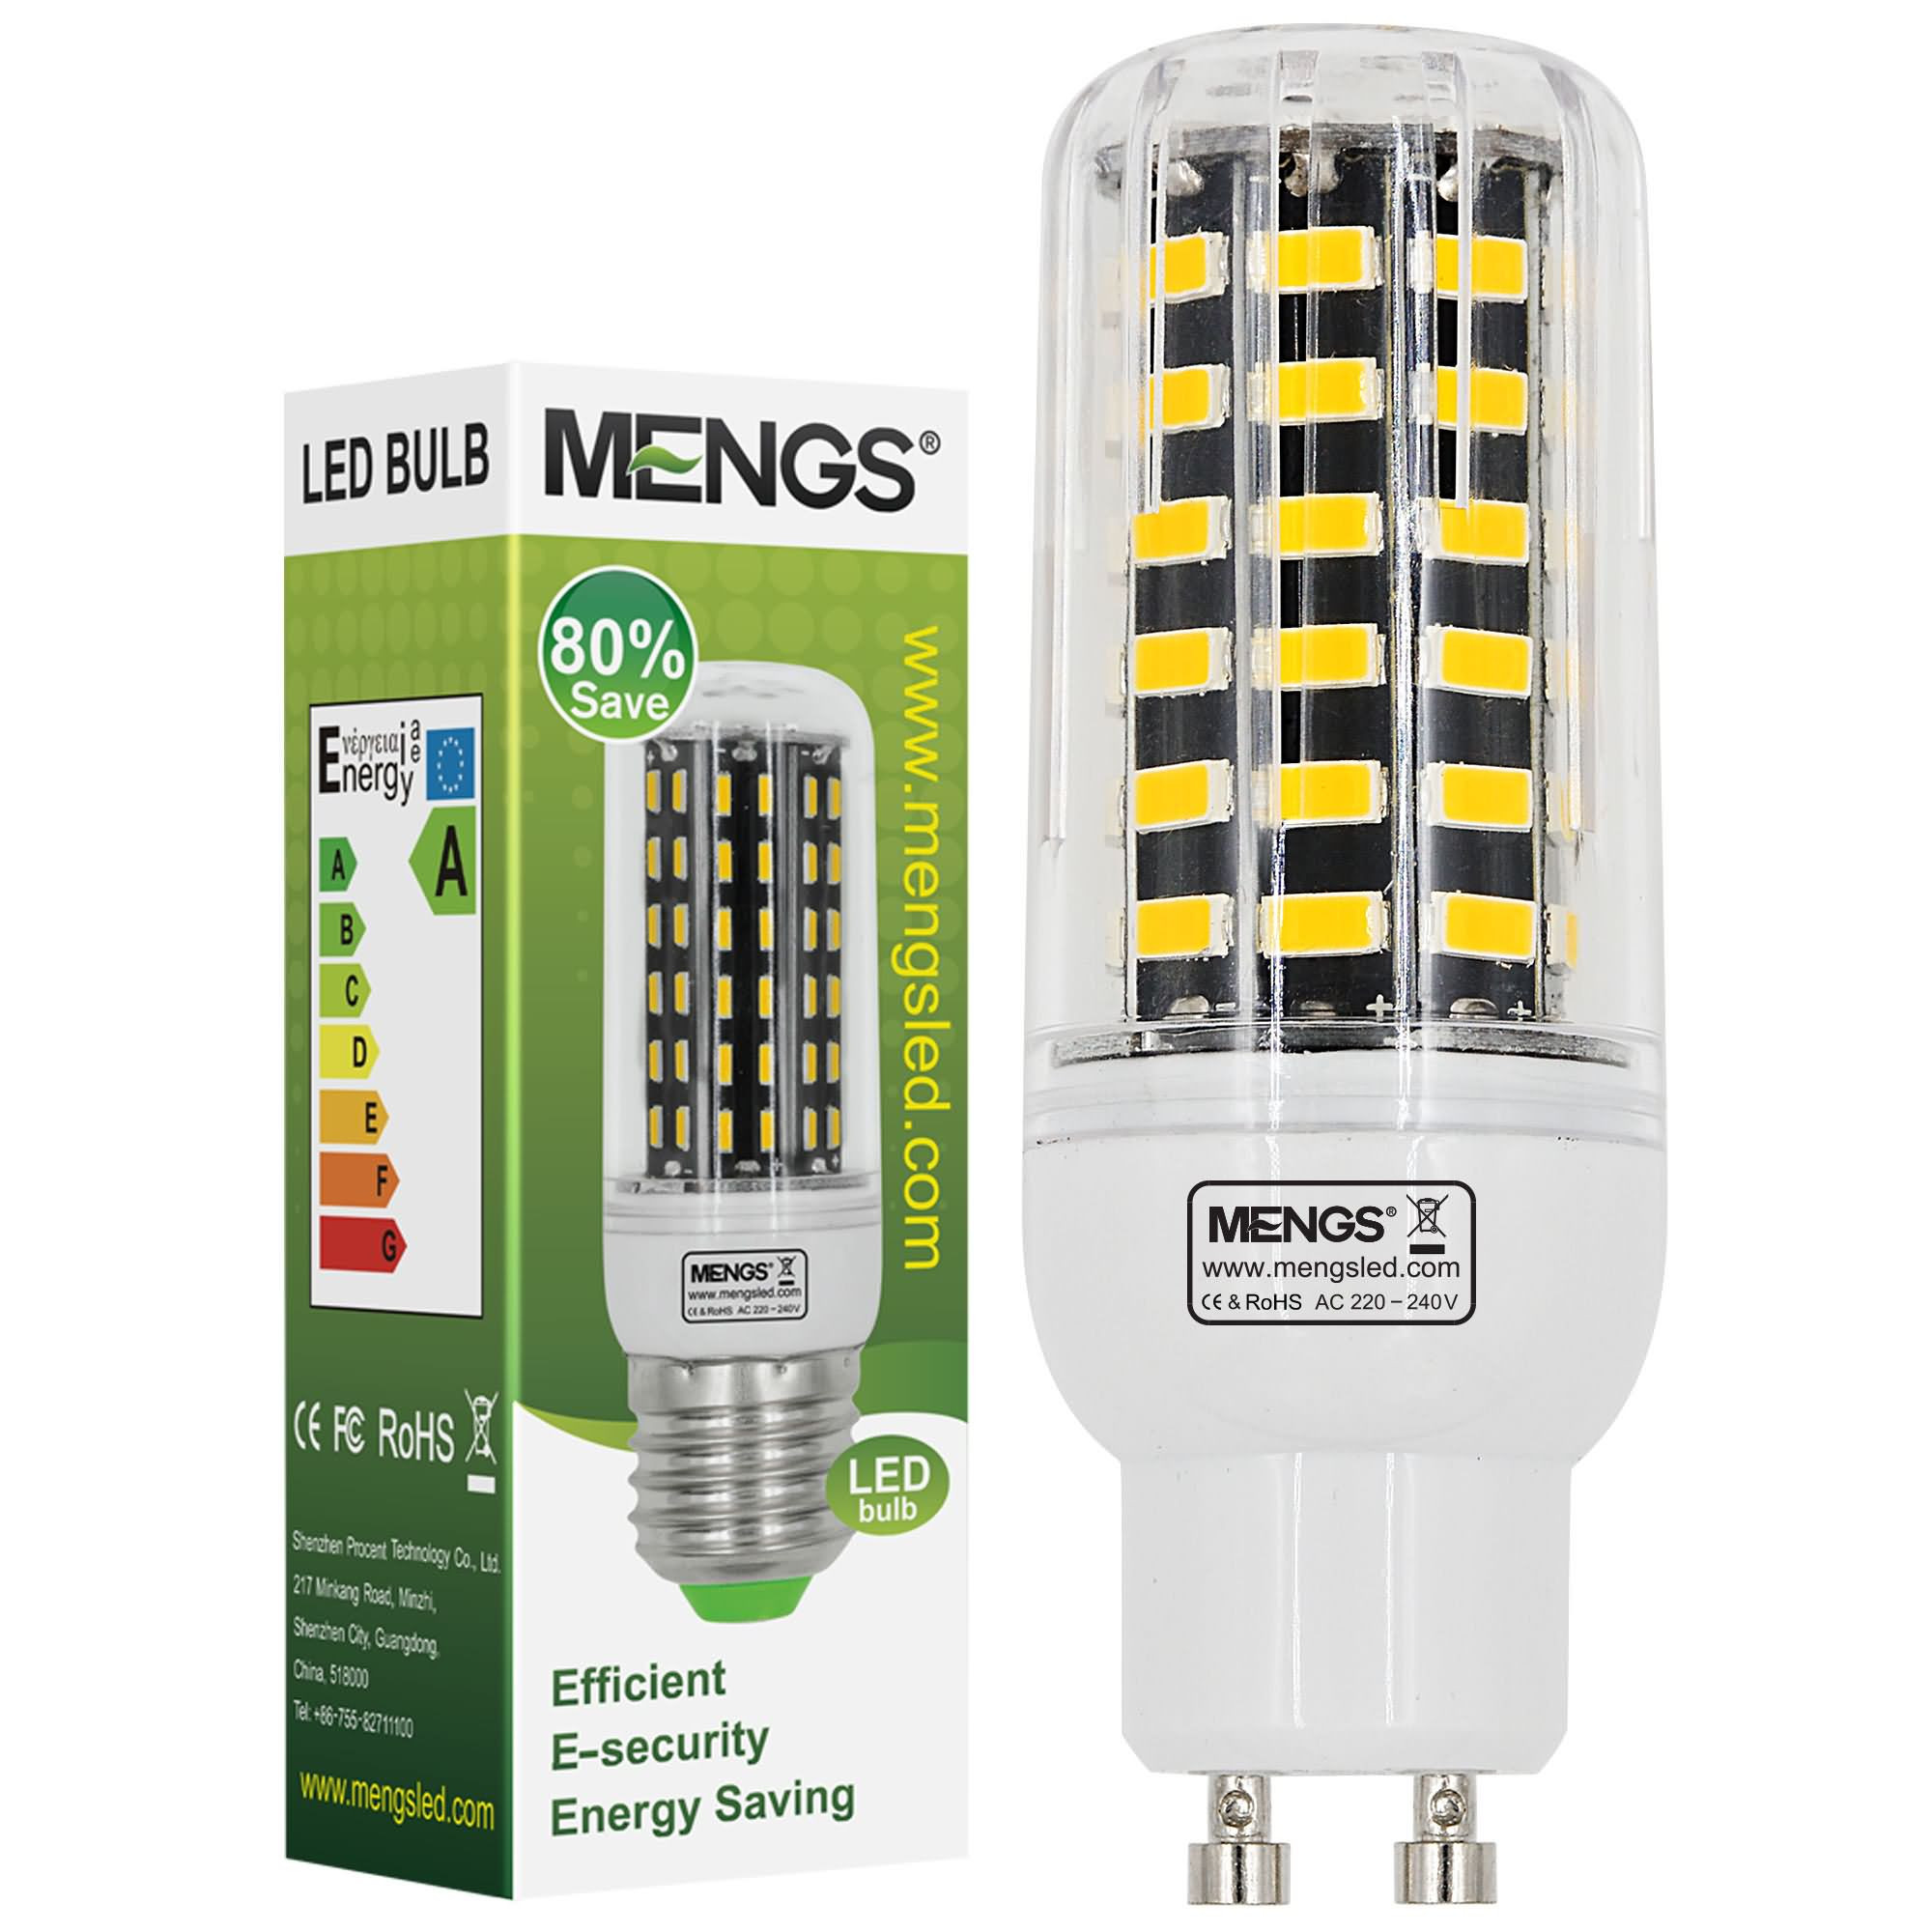 MENGS® GU10 9W LED Corn Light 64x 5733 SMD LED Bulb Lamp In Warm White Energy-Saving Lamp